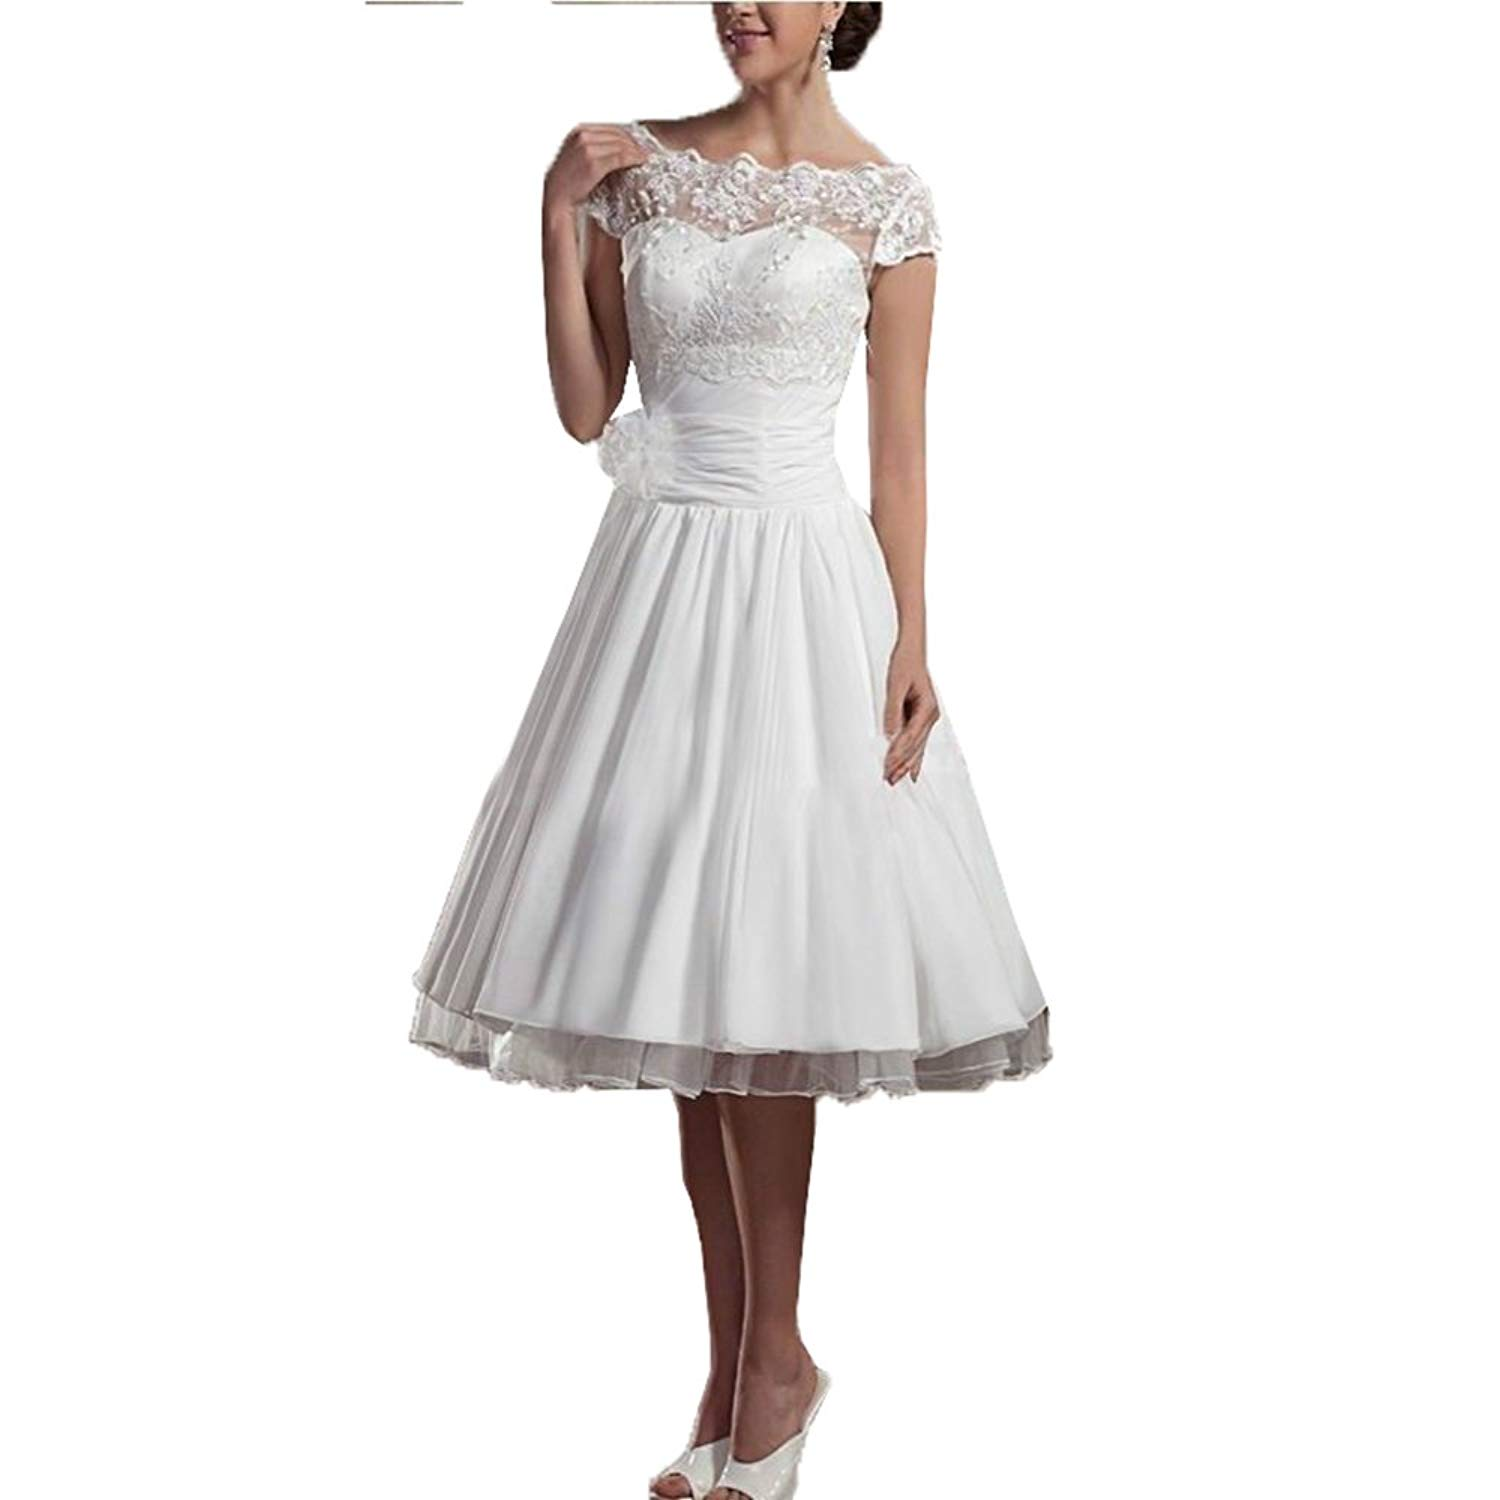 Cheap Wedding Dresses For Short Fat Women Find Wedding Dresses For